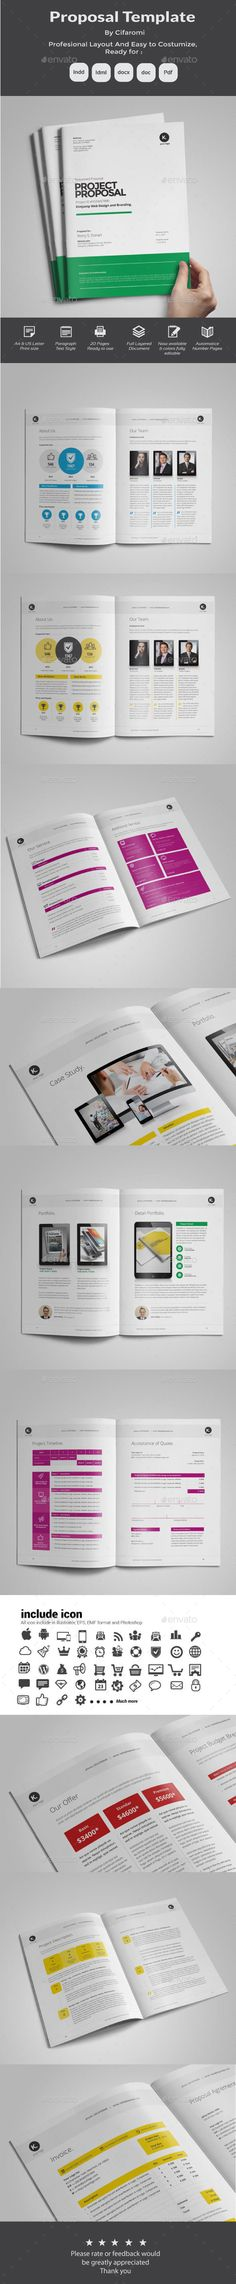 Invoice Excel Font logo and Logos - website proposal template